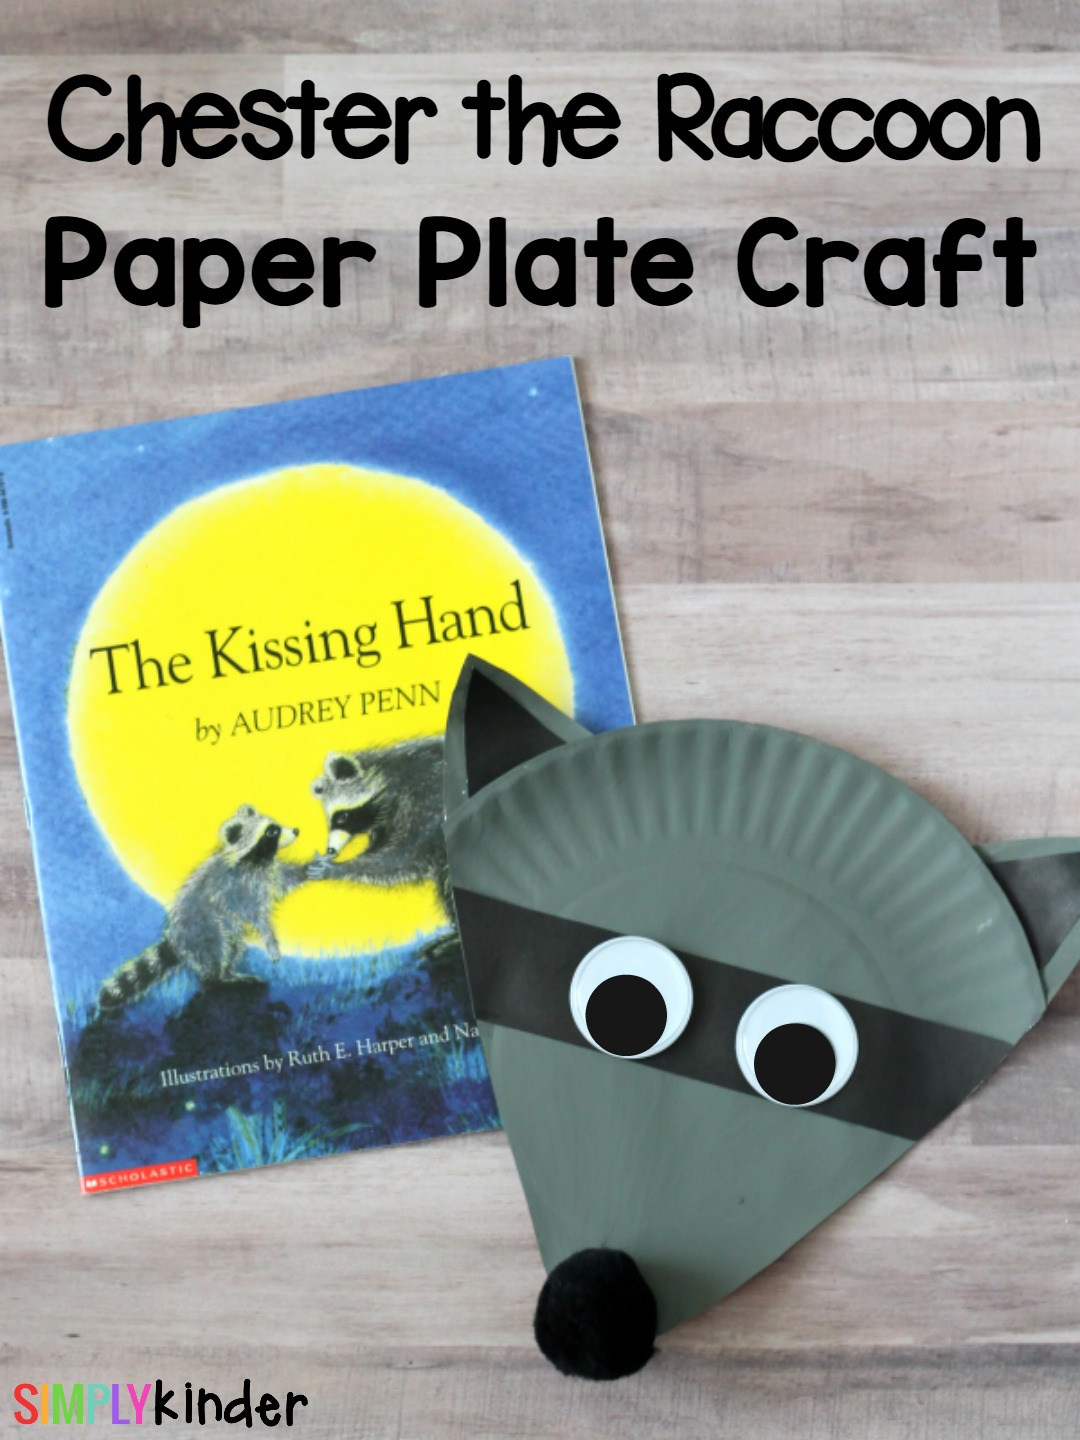 Chester the Raccoon Paper Plate Craft, Paper Plate Craft, Back-to-School Craft, The Kissing Hand